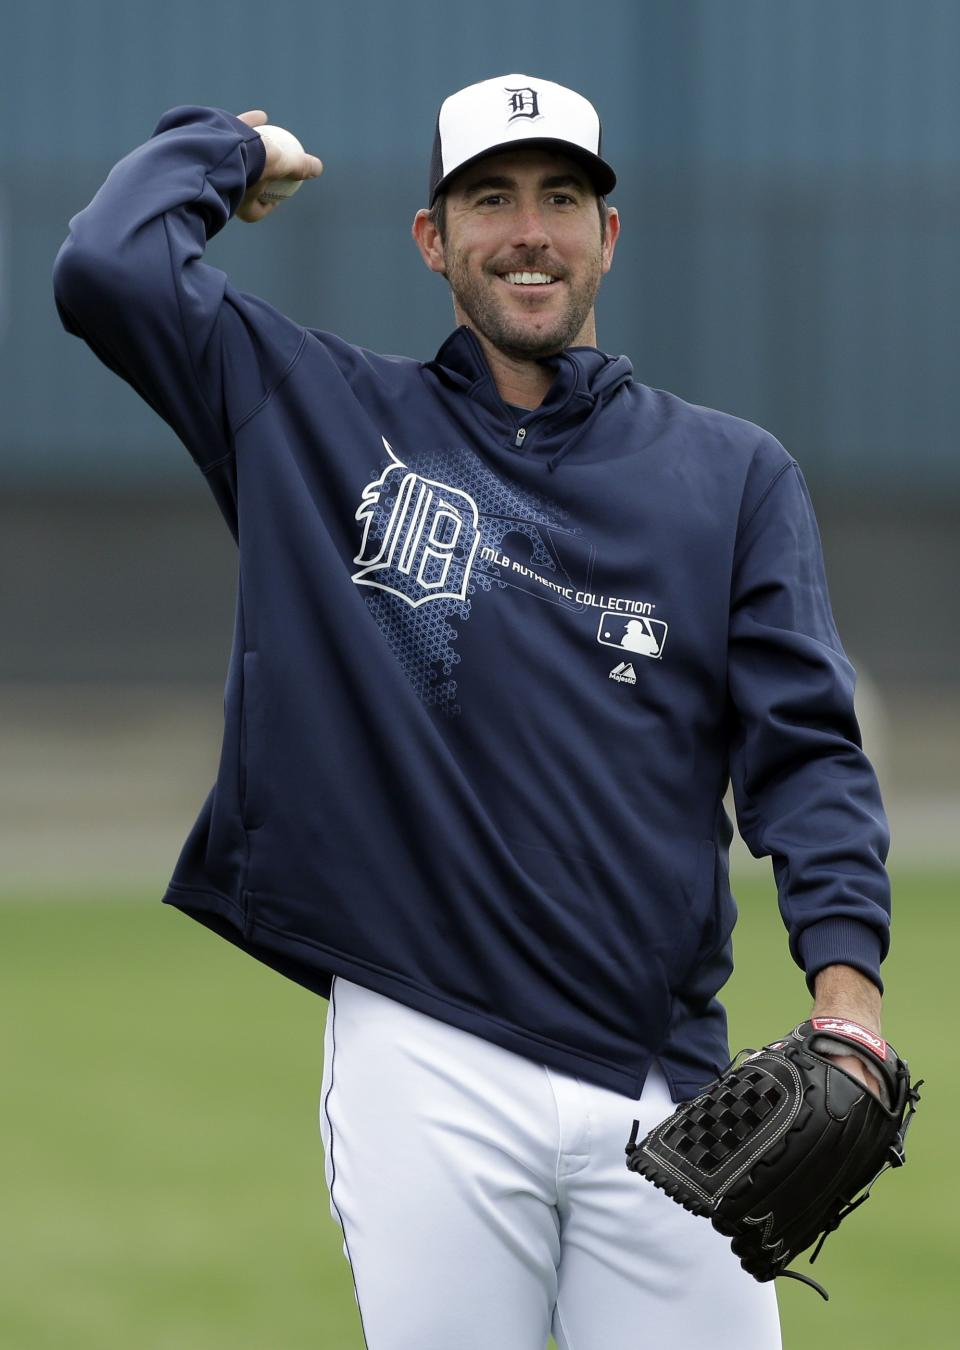 FILE - In this Feb. 15, 2013 file photo, Detroit Tigers starting pitcher Justin Verlander throws the ball during a baseball spring training workout in Lakeland, Fla. Verlander has agreed to a five-year contract covering 2015-19. (AP Photo/Charlie Neibergall, File)